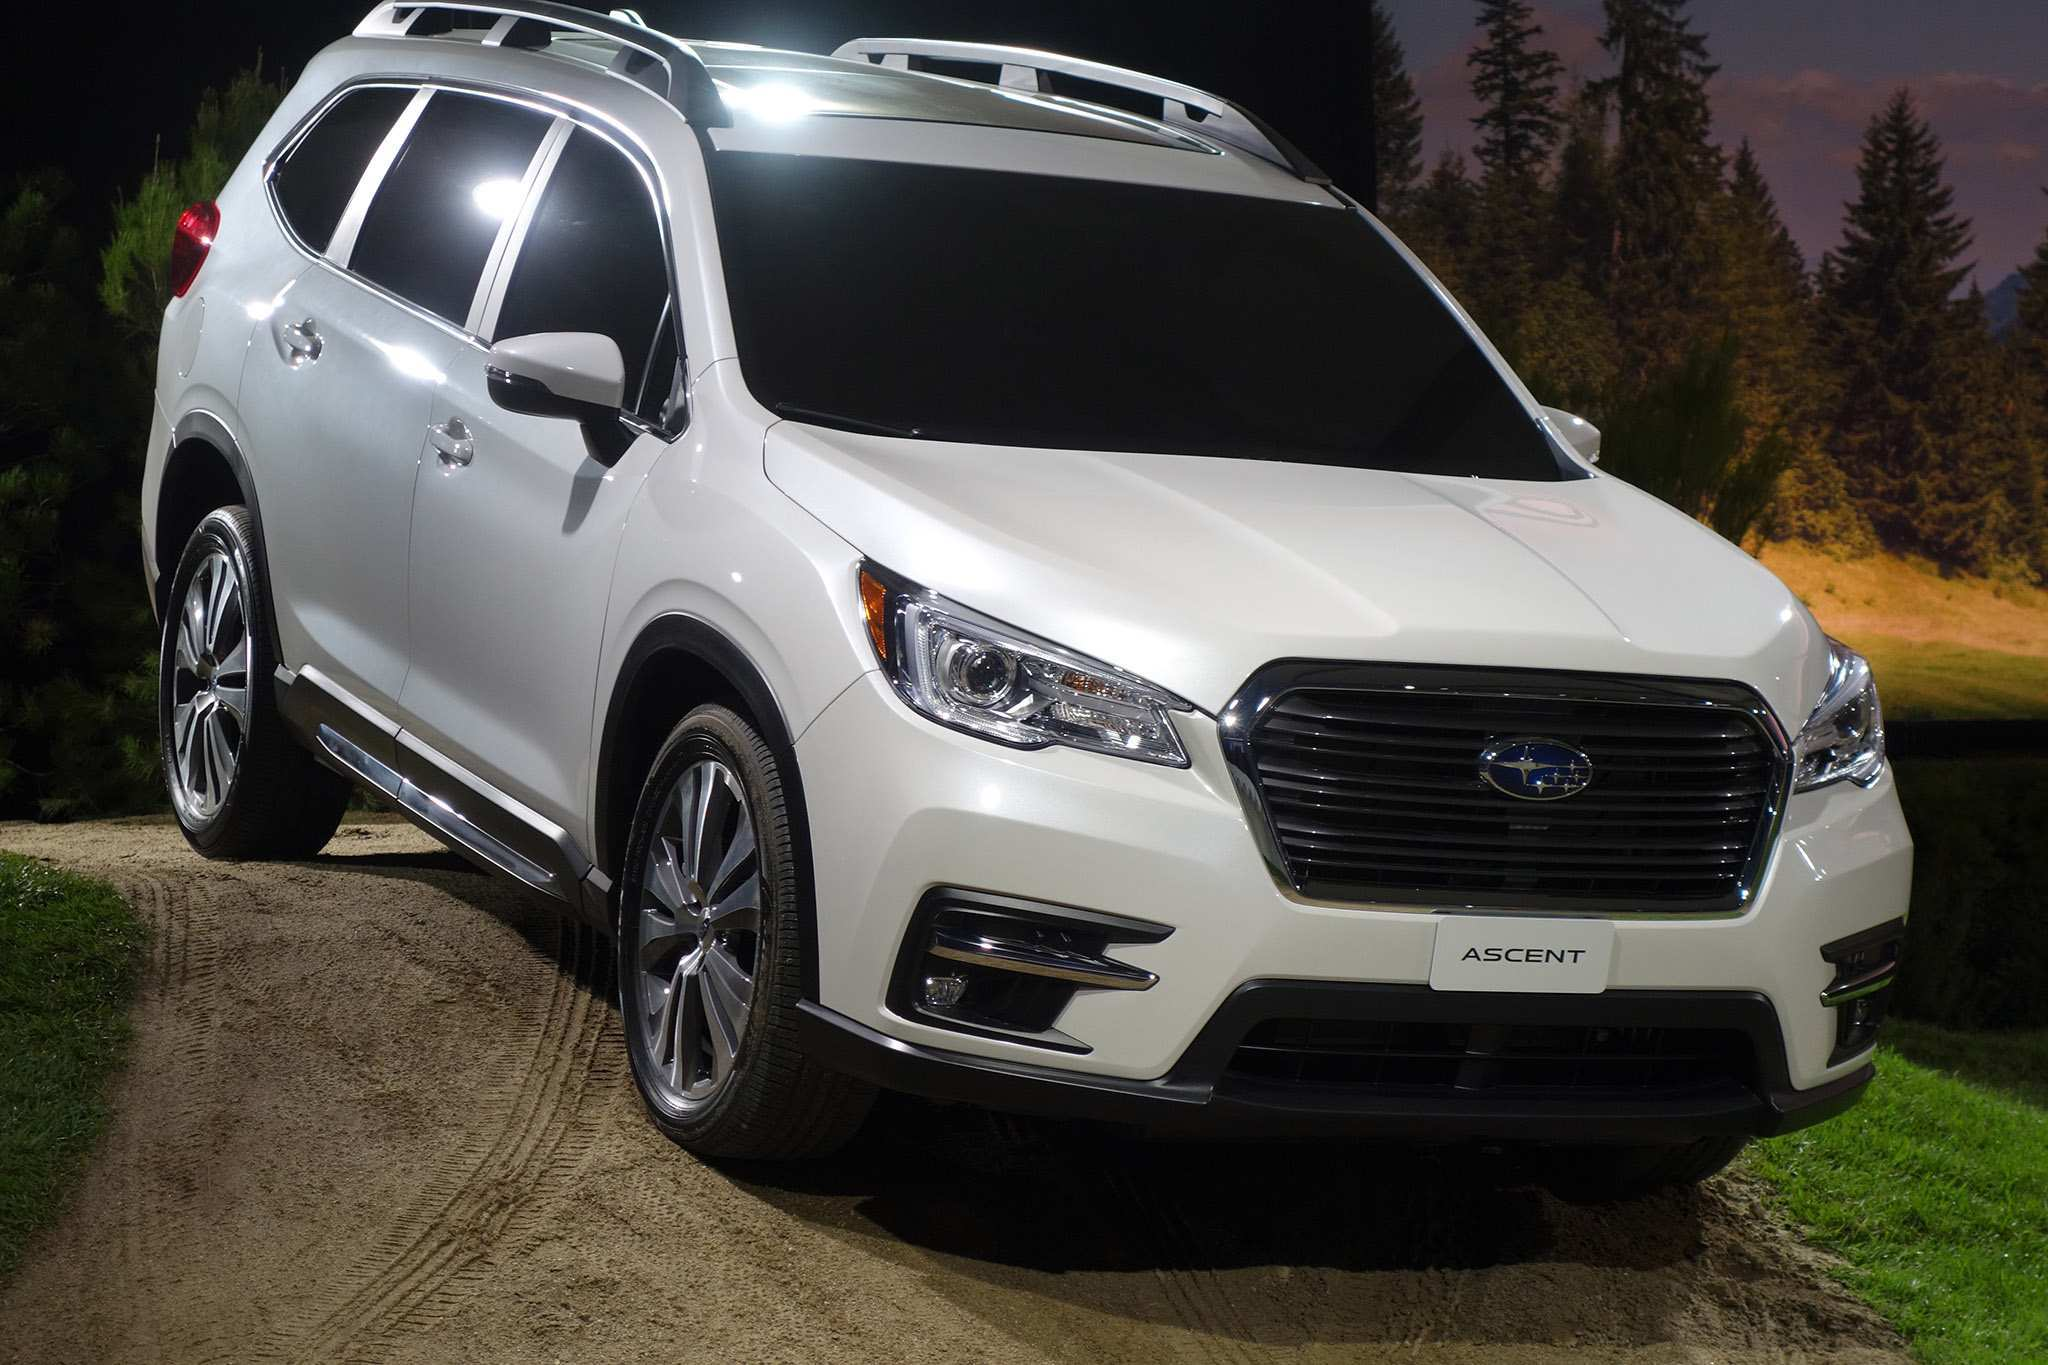 54 Gallery of 2019 Subaru Ascent Mpg Speed Test by 2019 Subaru Ascent Mpg